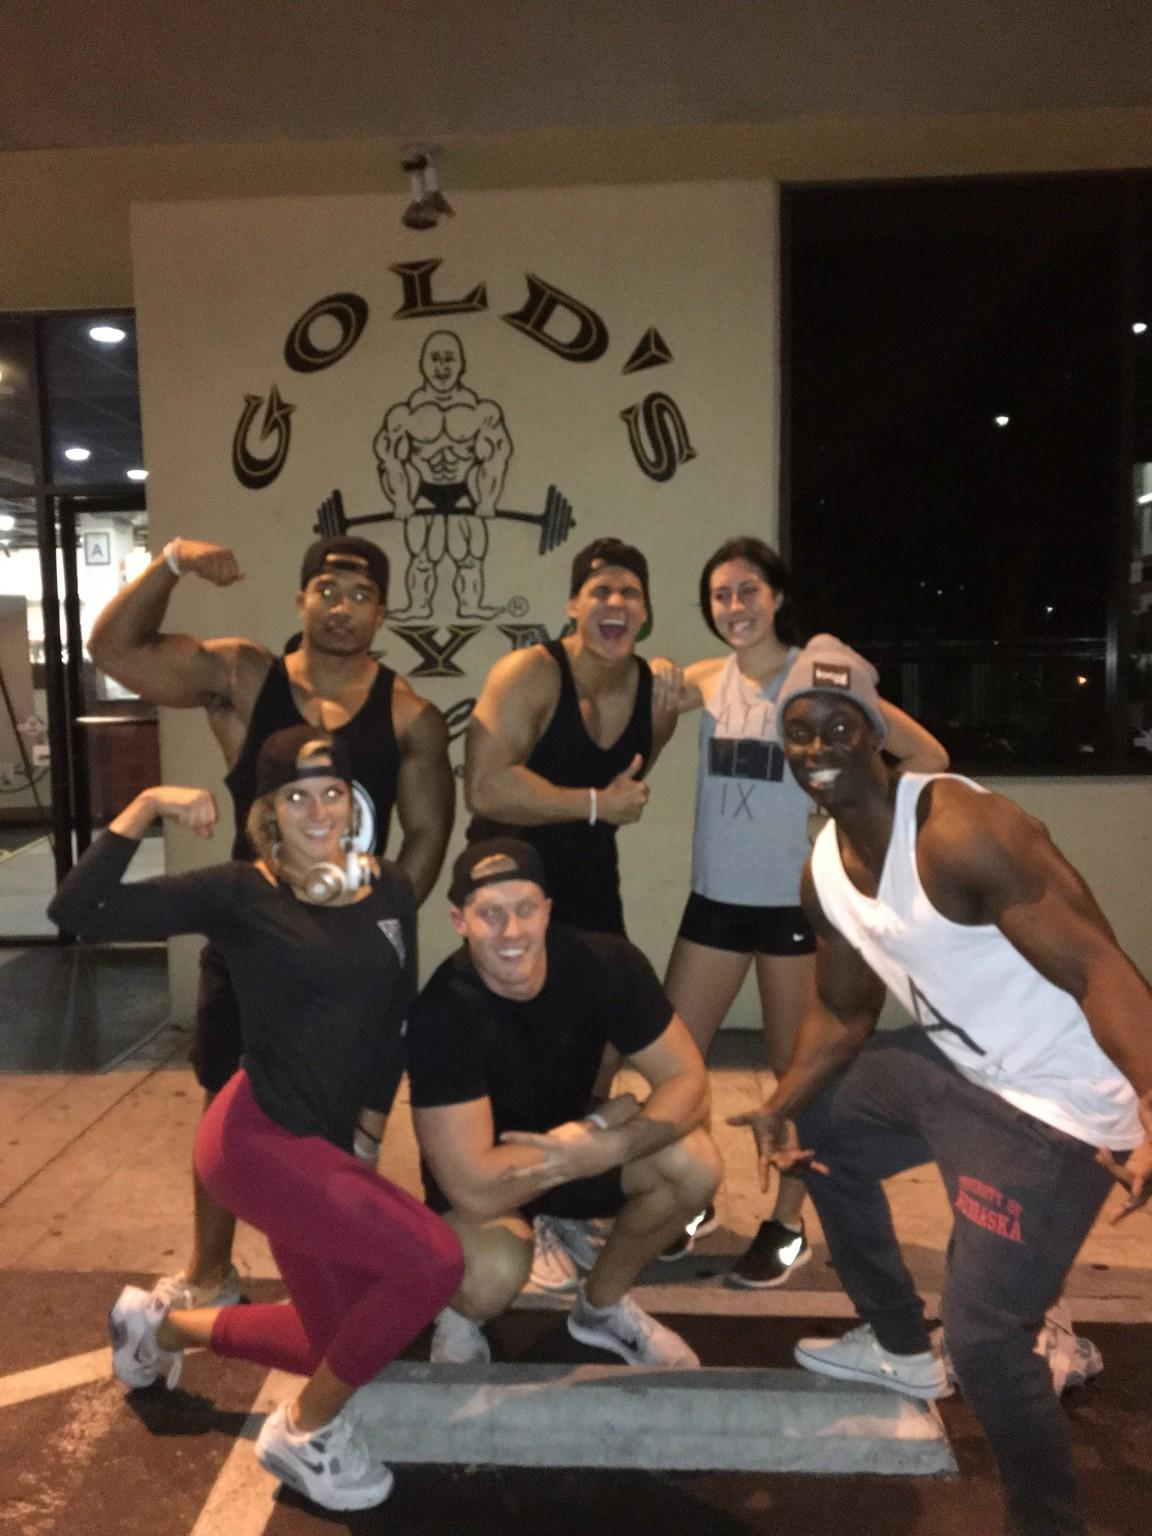 The Local Athletix team at Gold's Gym in LA. Photo courtesy of Local Athletix.